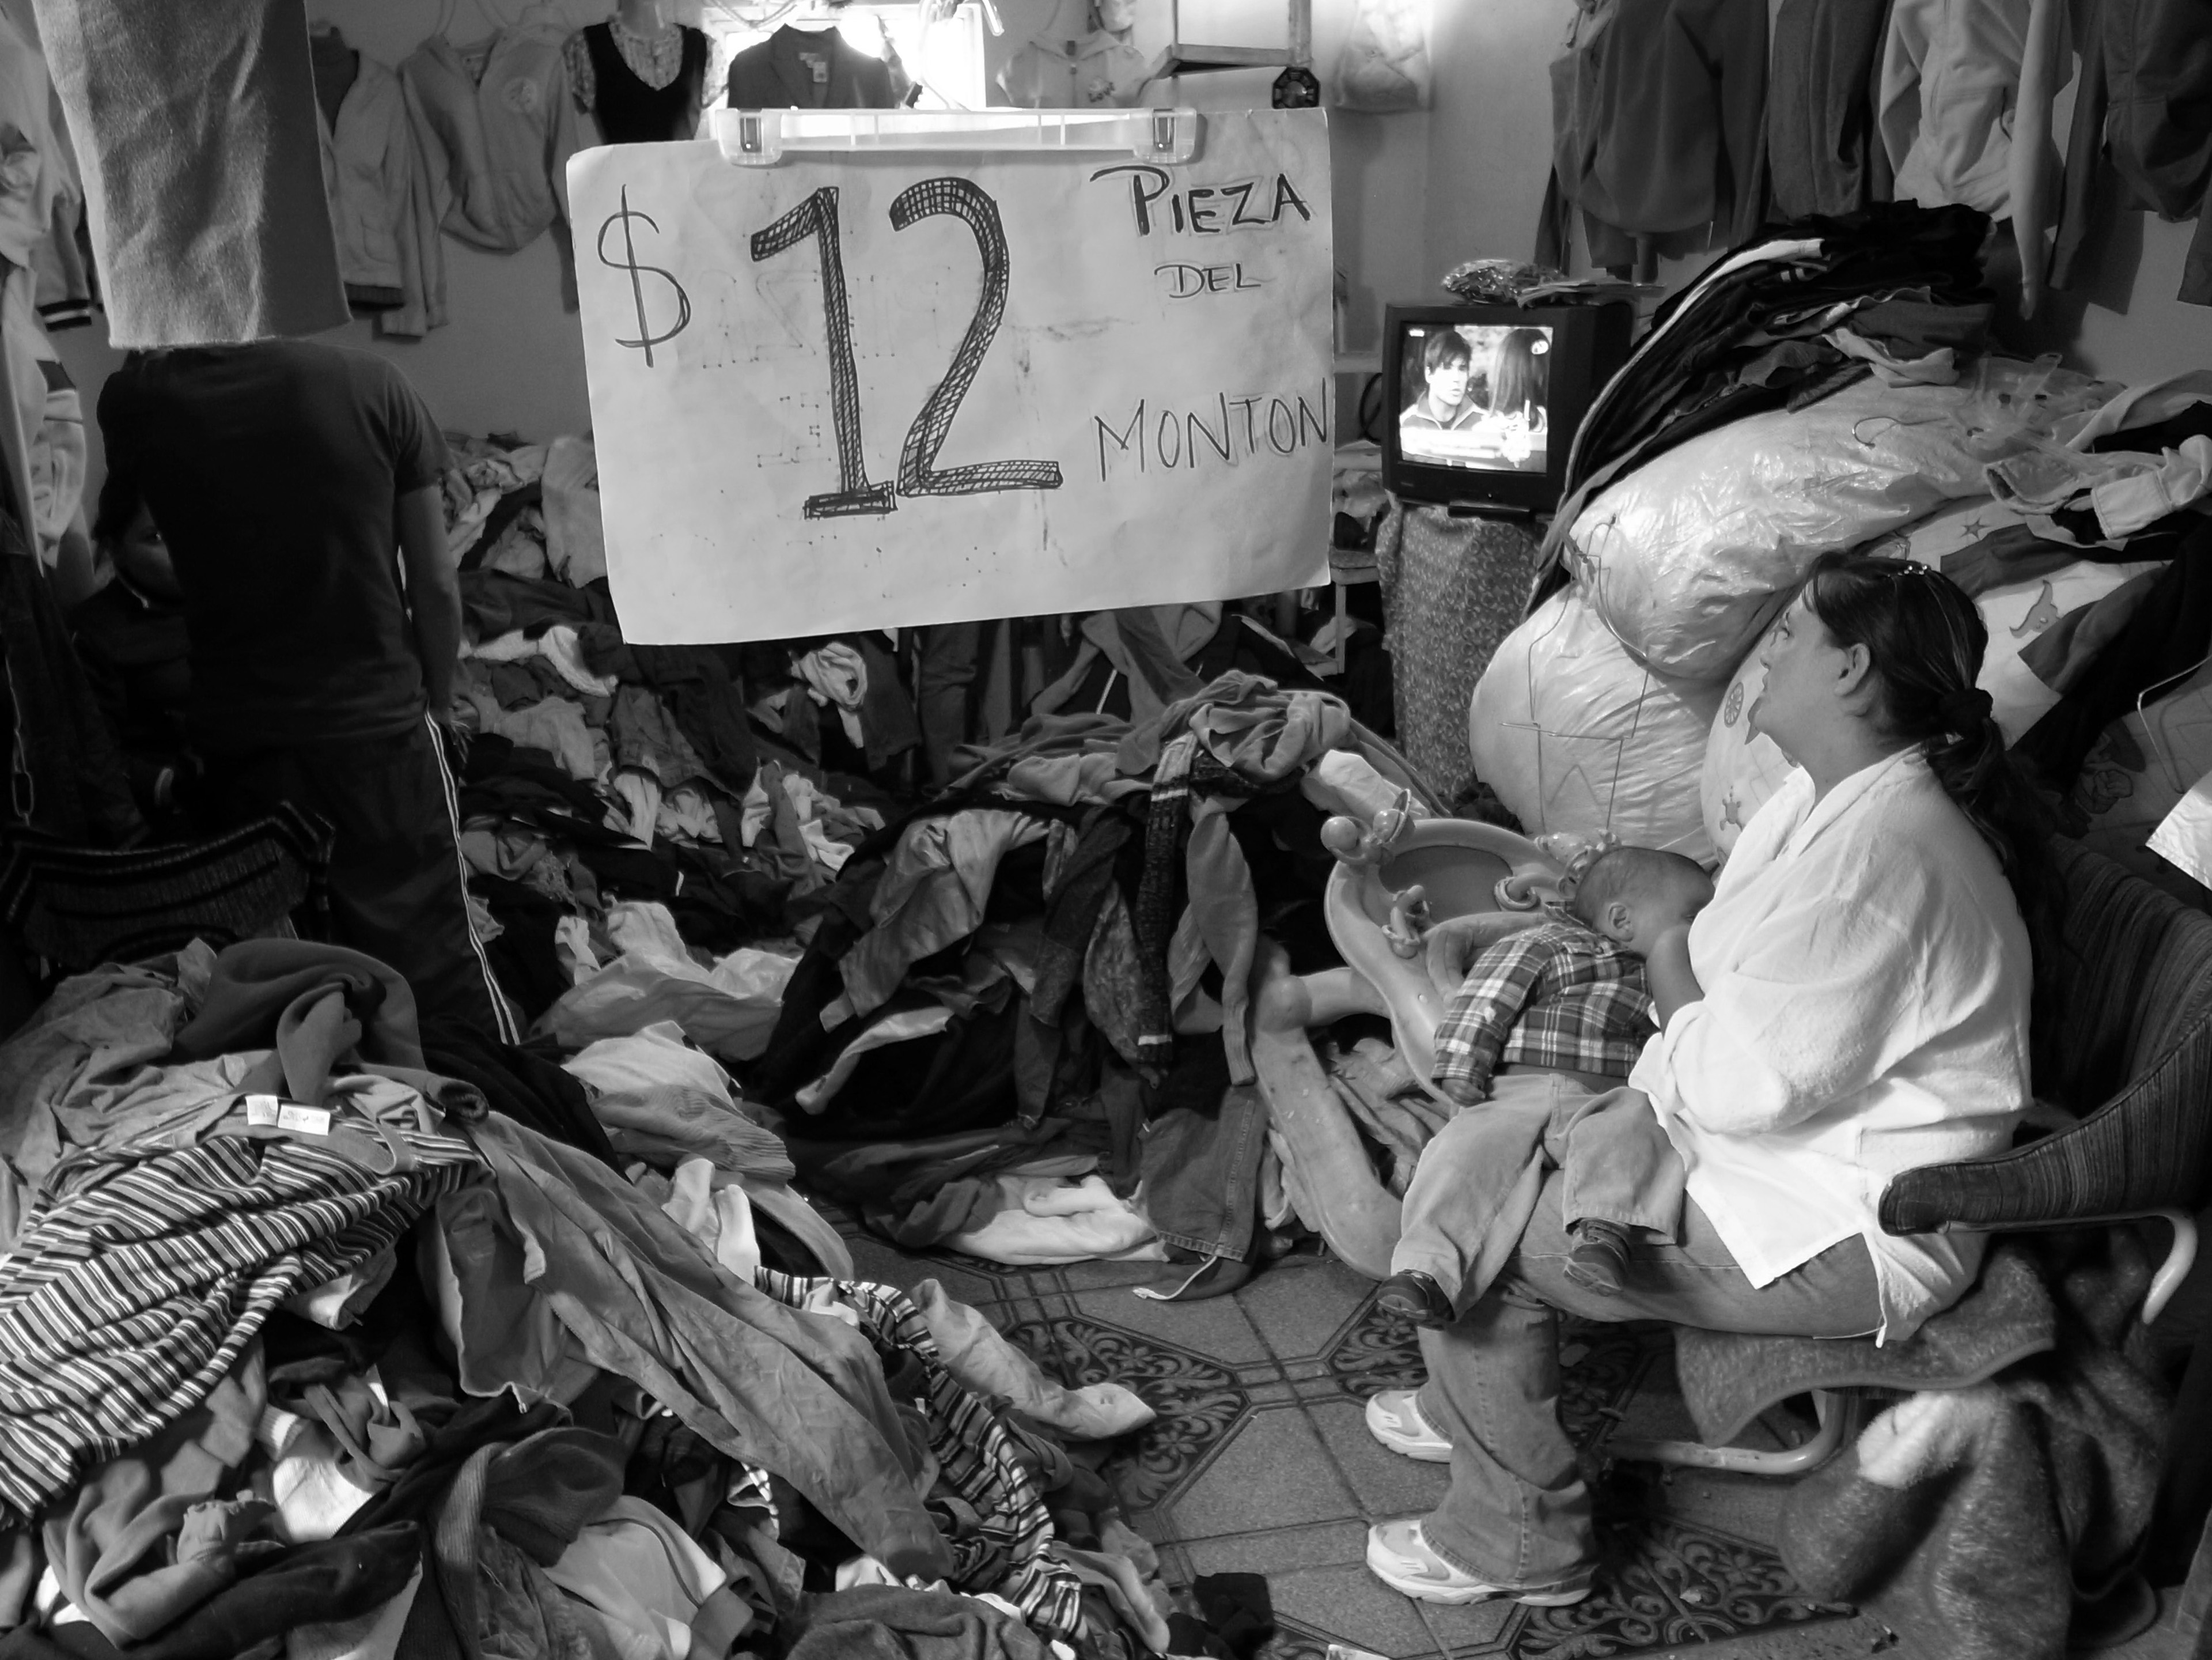 A woman nursing a baby sits amidst piles of clothes and a sign showing a price